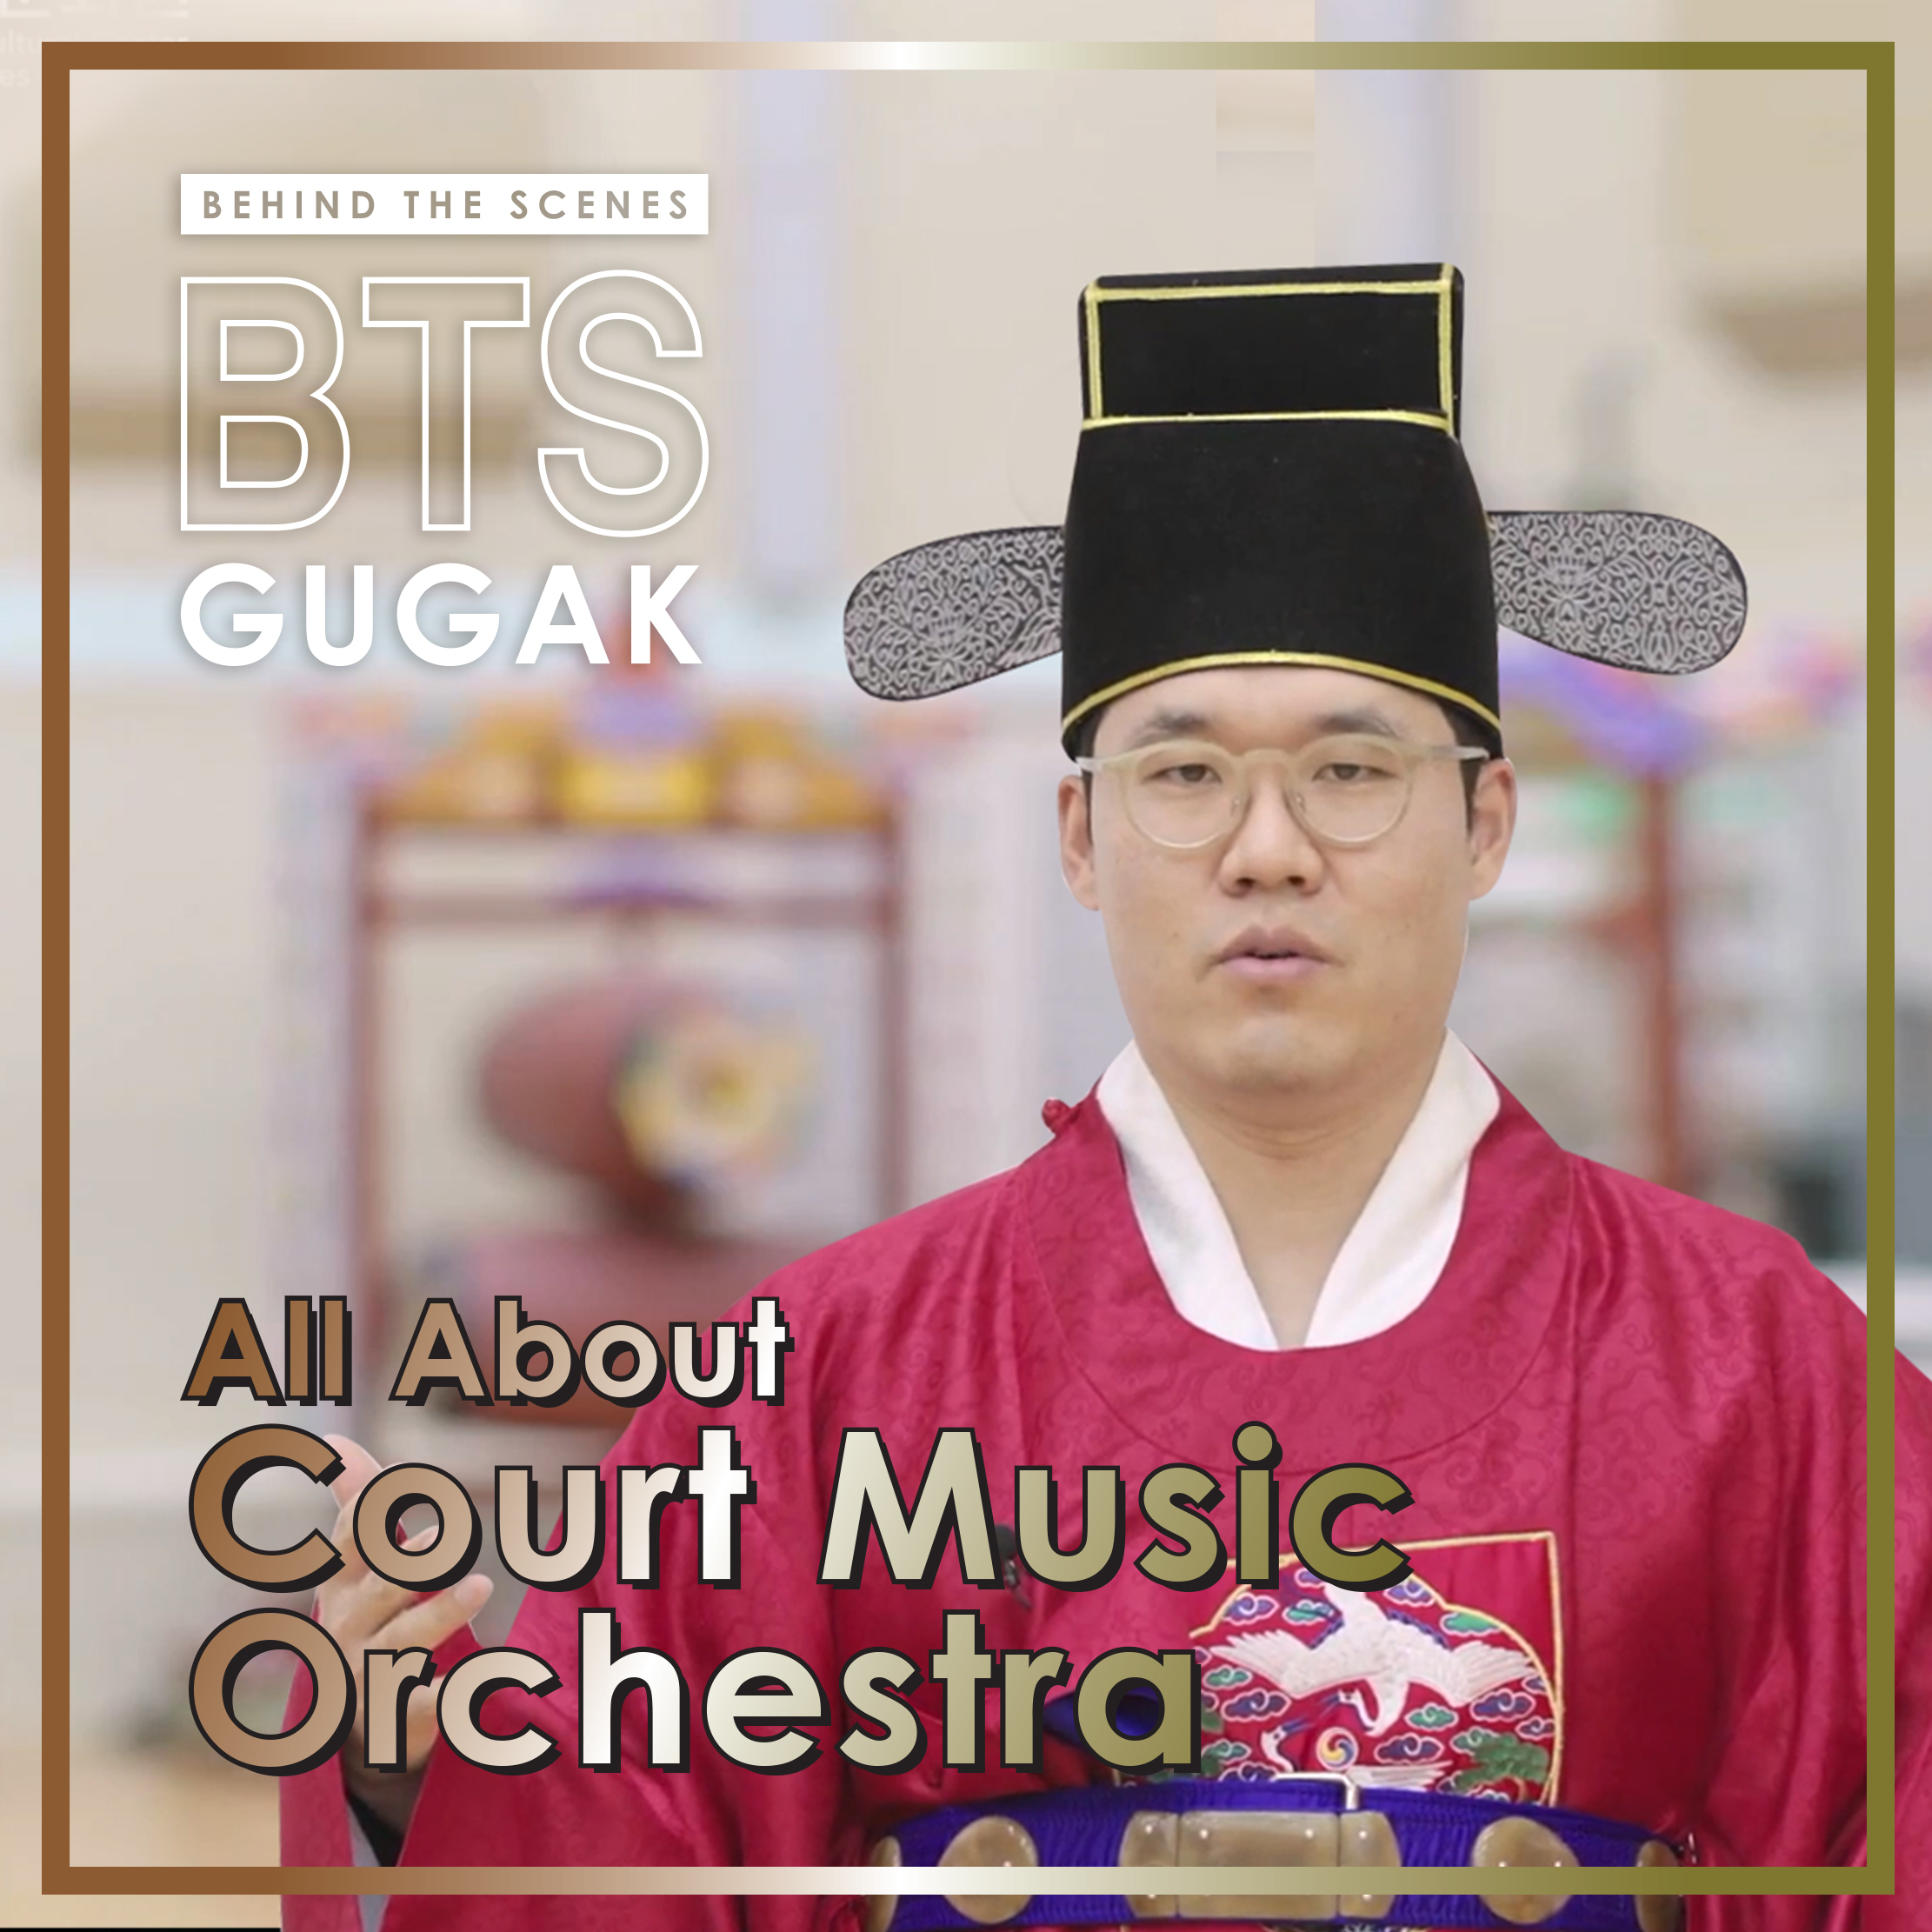 BTS Gugak EP. 5 All about Court Music Orchestra